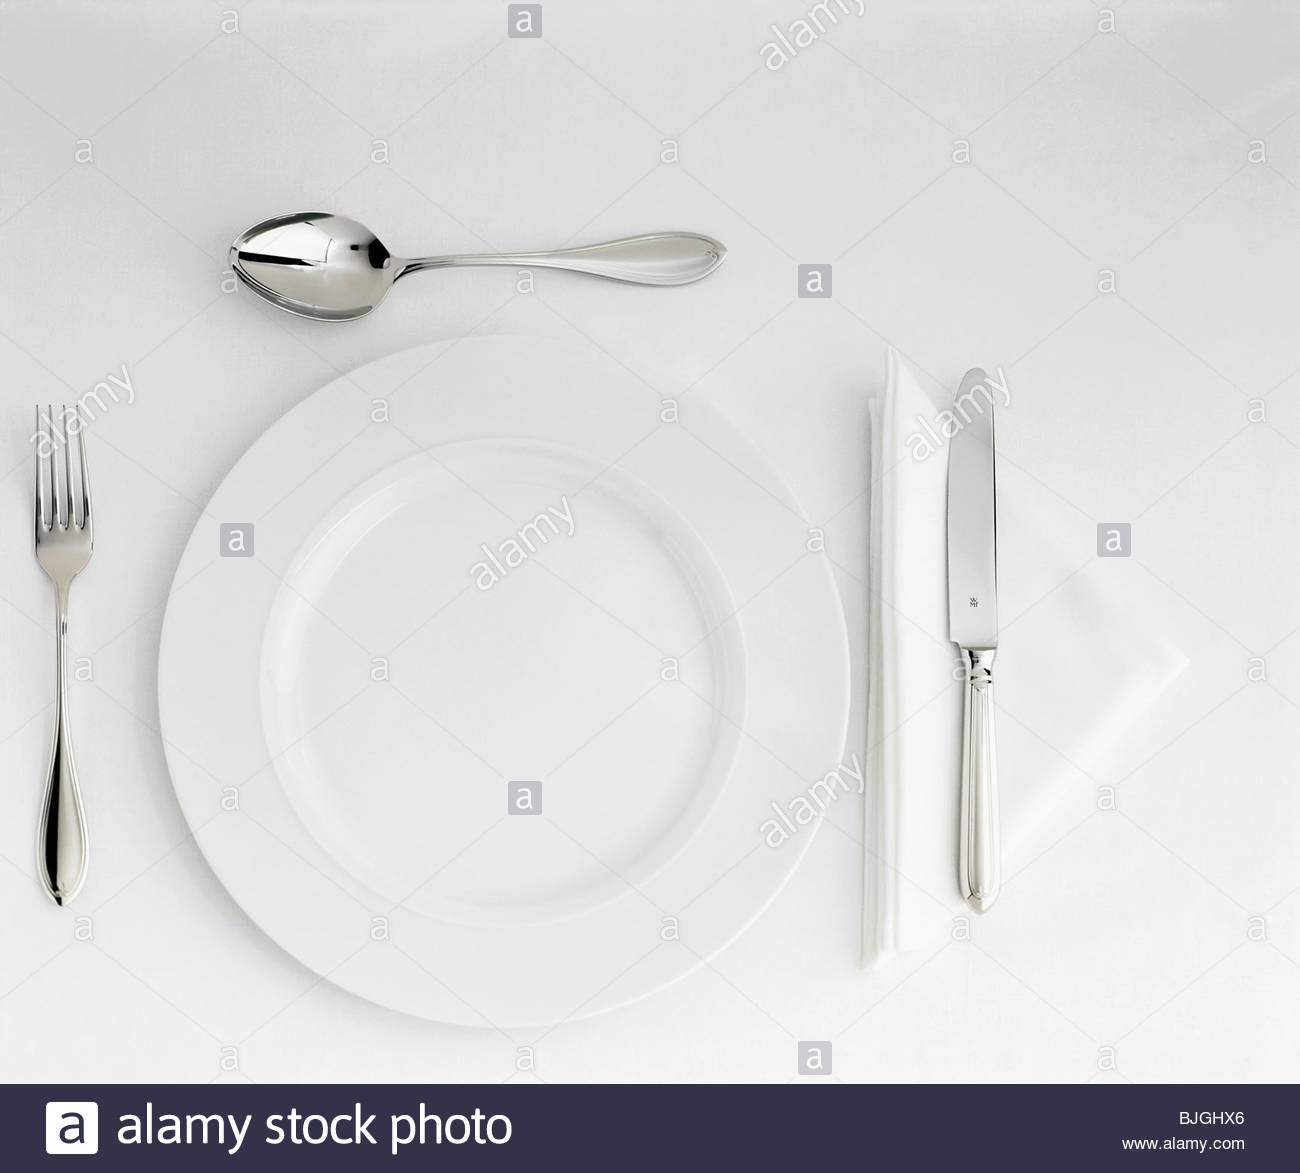 Table Setting with White Plate, Cutlery & Triangular Napkin Stock ...